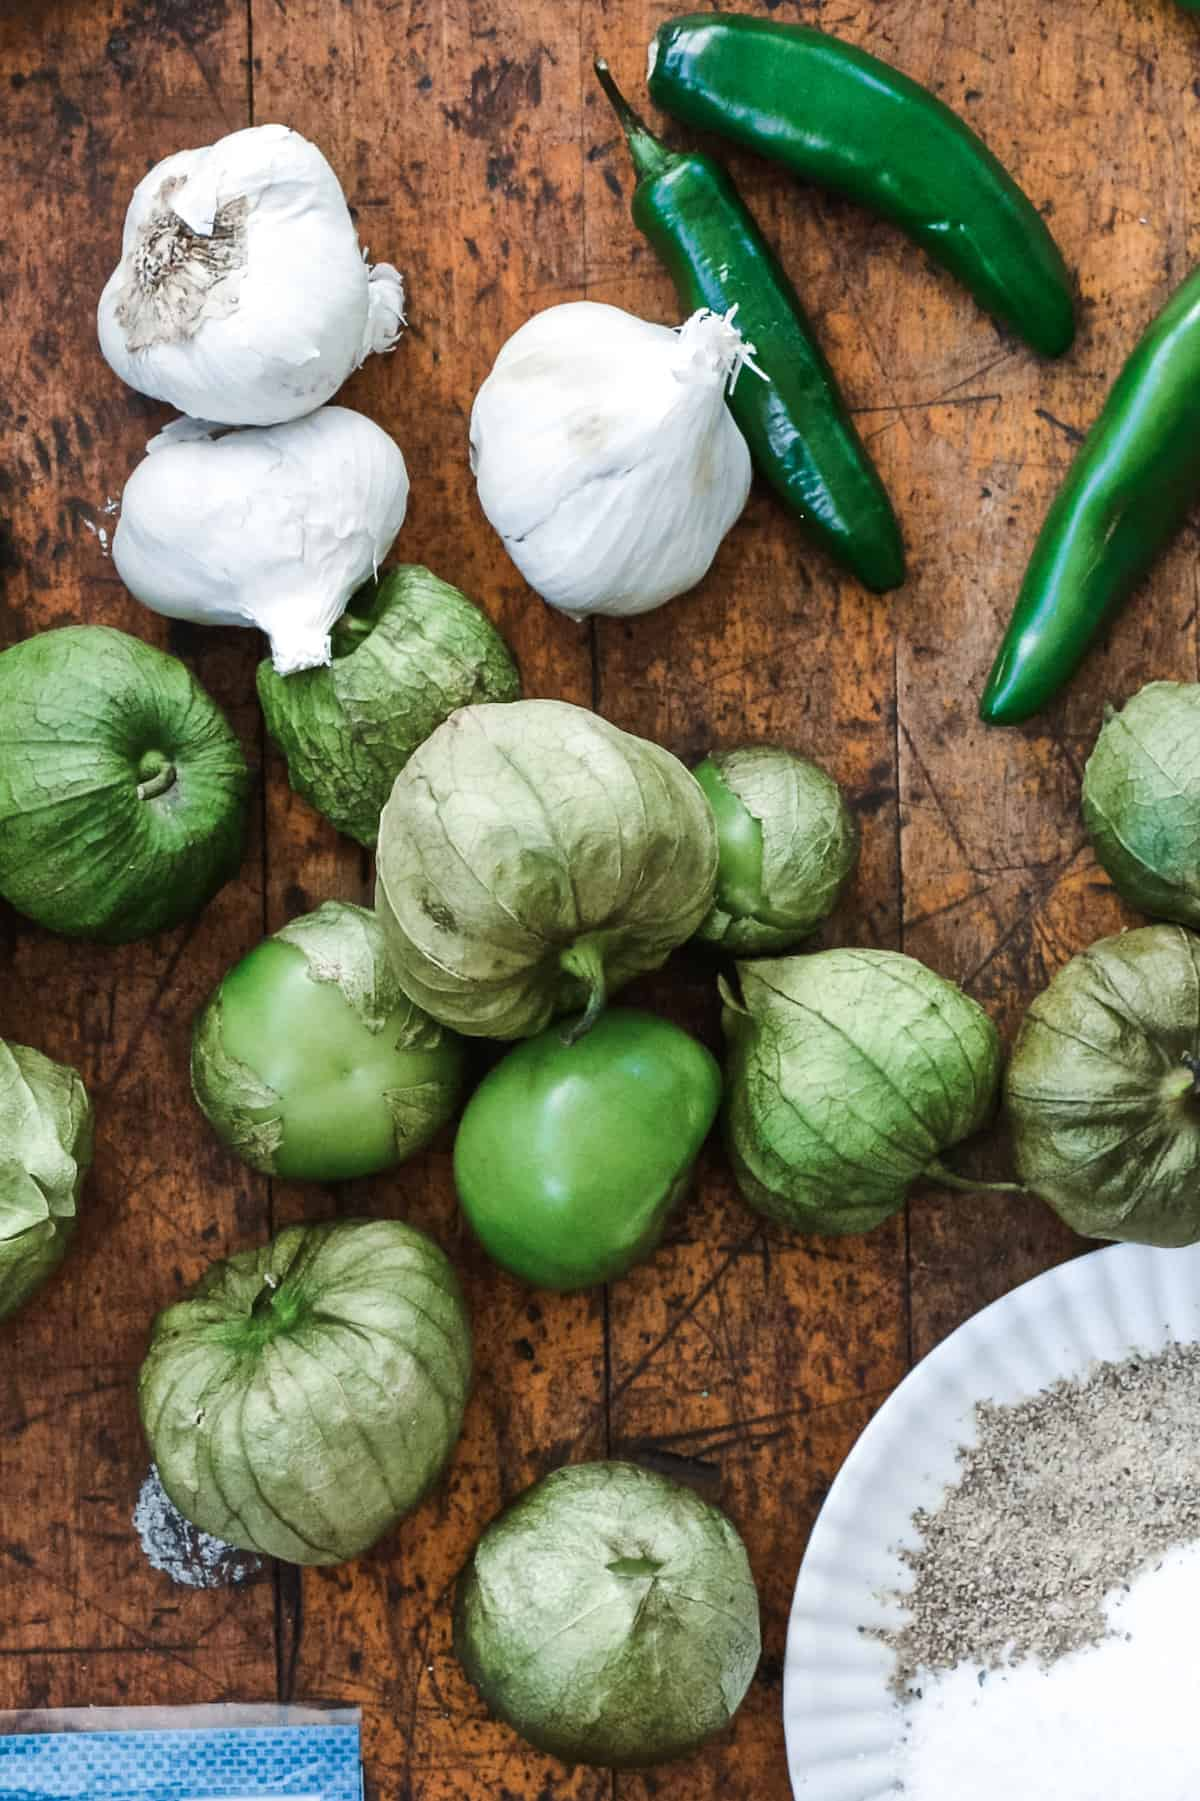 Heads of garlic, serrano peppers, tomatillos, and spices on a white plate sitting on a wood table.